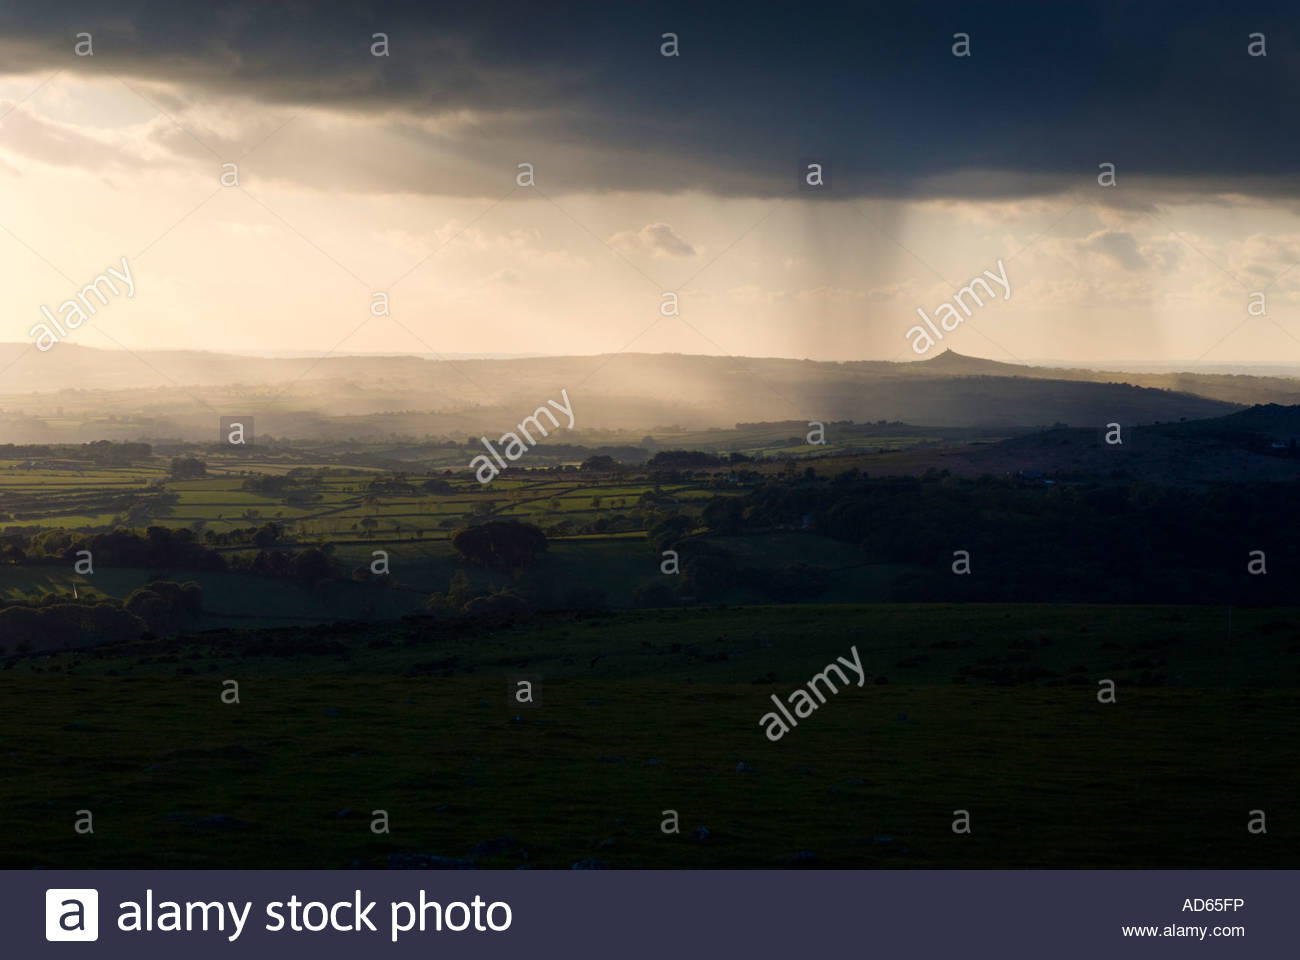 Storm passing over Brentor church, Dartmoor National Park, Devon - Stock Image